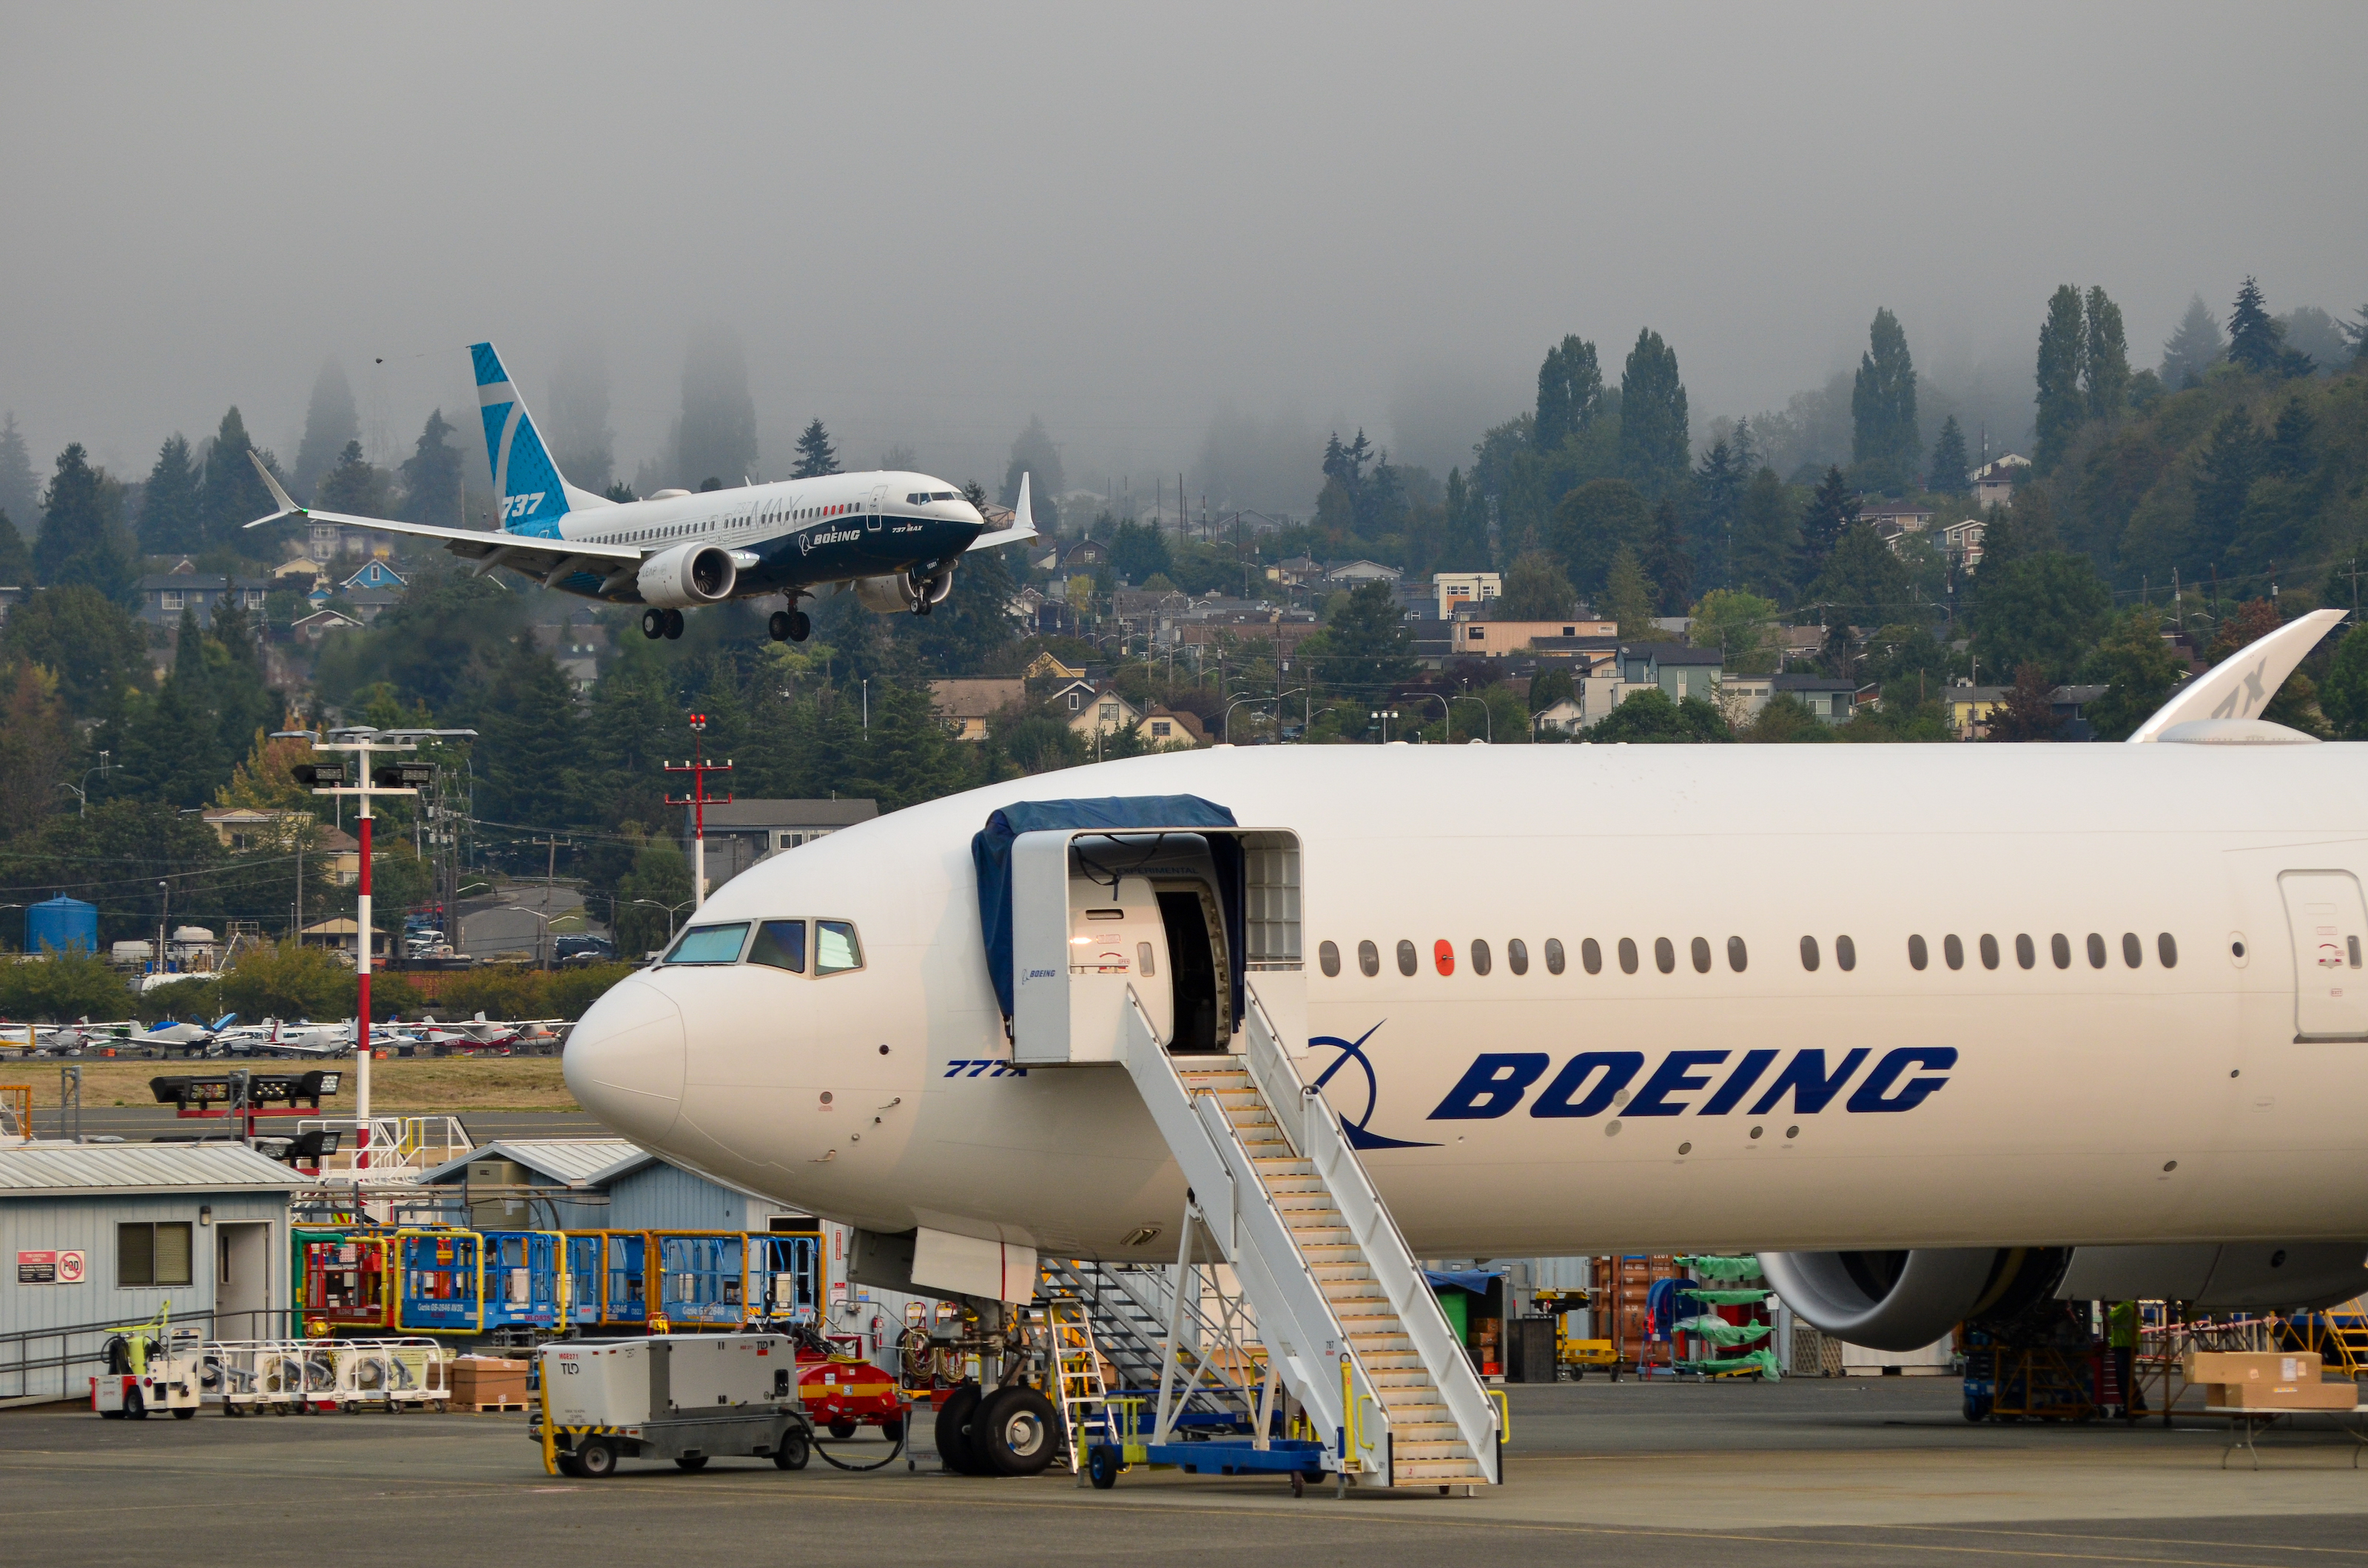 A Boeing 737 Max 7 piloted by FAA Administrator Steve Dickson lands at Boeing Field in Seattle, Wash. following a demonstration test flight for the U.S. aviation regulator in September 2020.